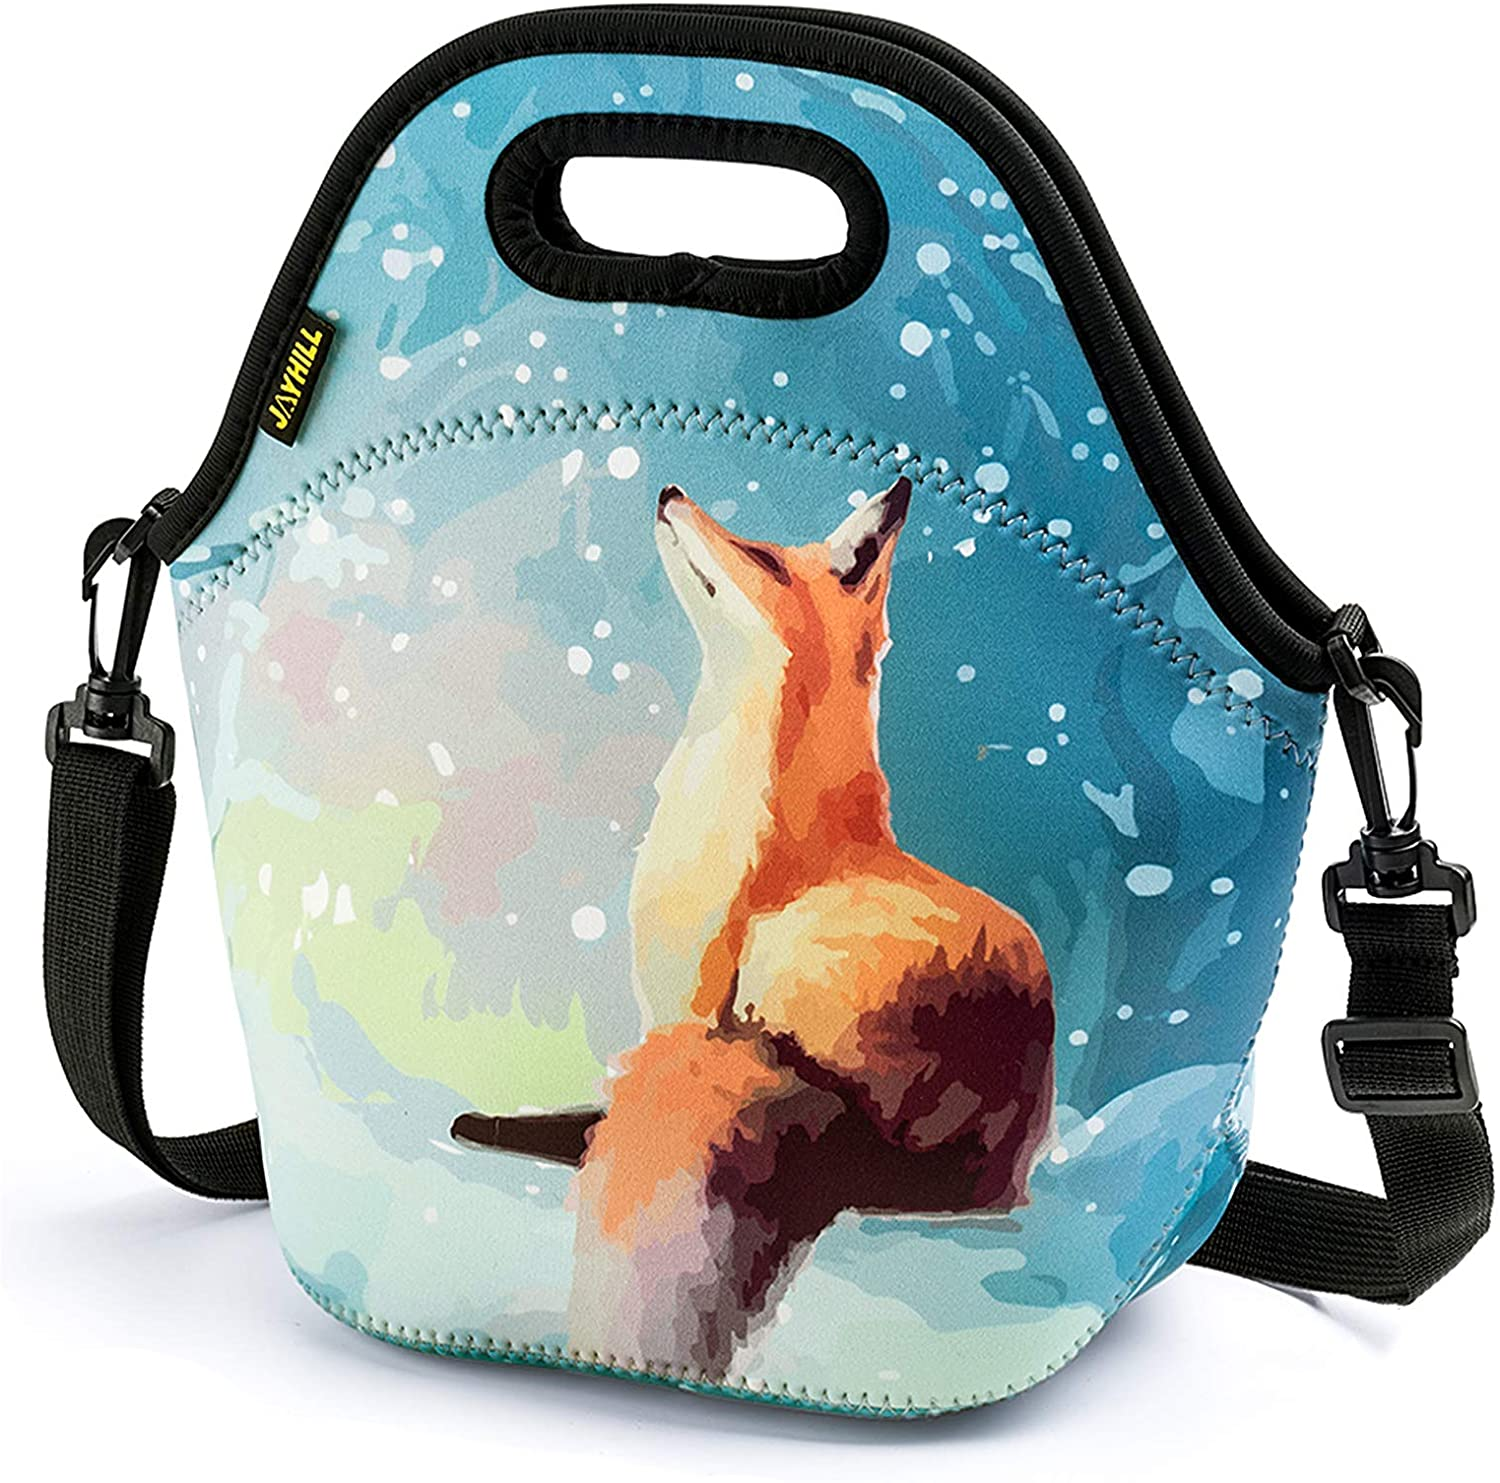 Neoprene Lunch Bag, Cute lunch bags for Women Kids Girls Men Teen Boys, Insulated Waterproof Lunch Tote Box for Work School Travel and Picnic (Orange Fox)